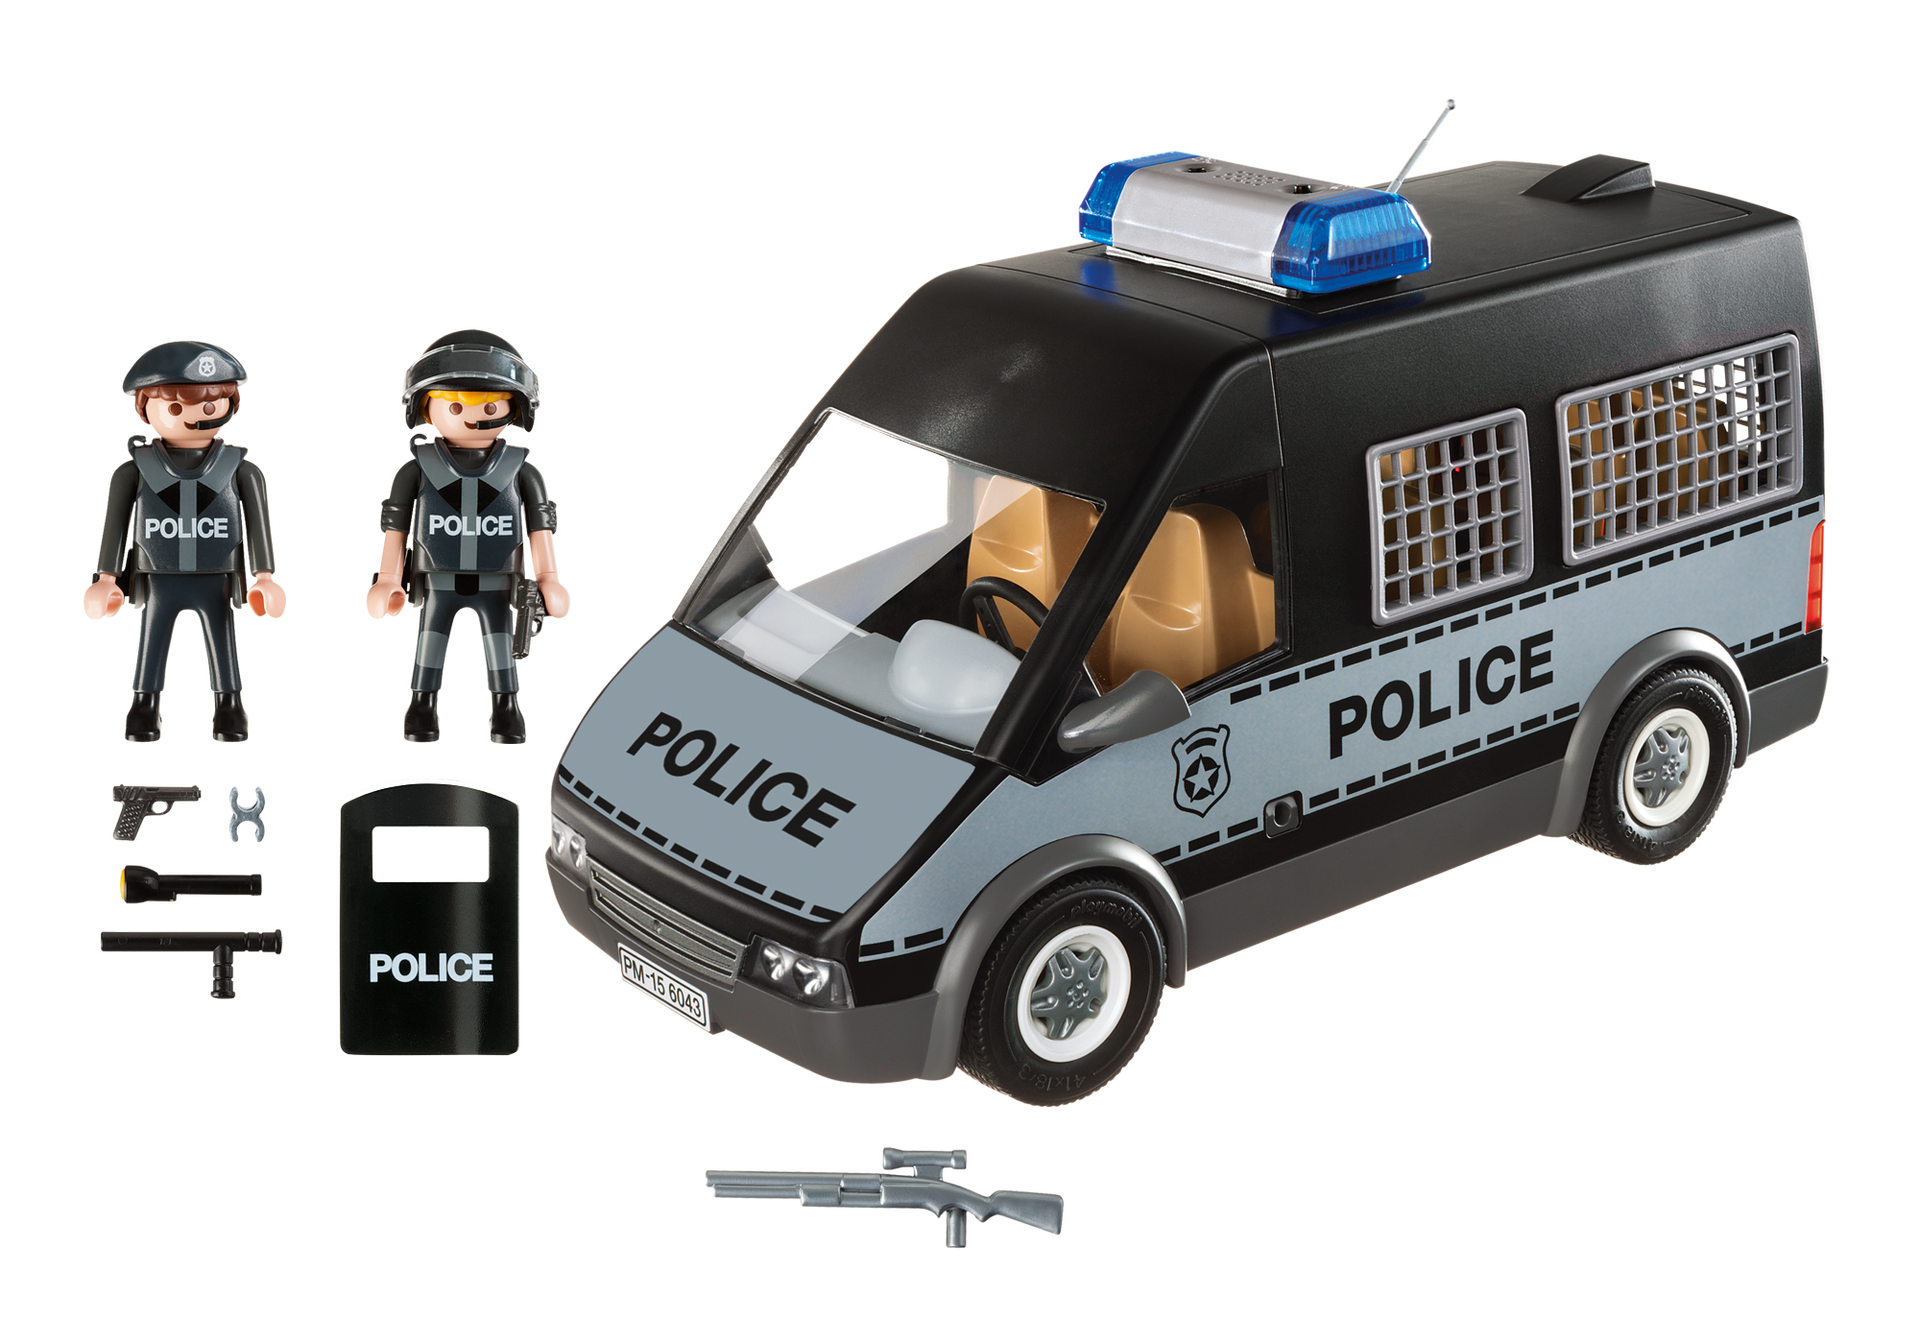 fourgon de police avec sir ne et gyrophare 6043 playmobil france. Black Bedroom Furniture Sets. Home Design Ideas